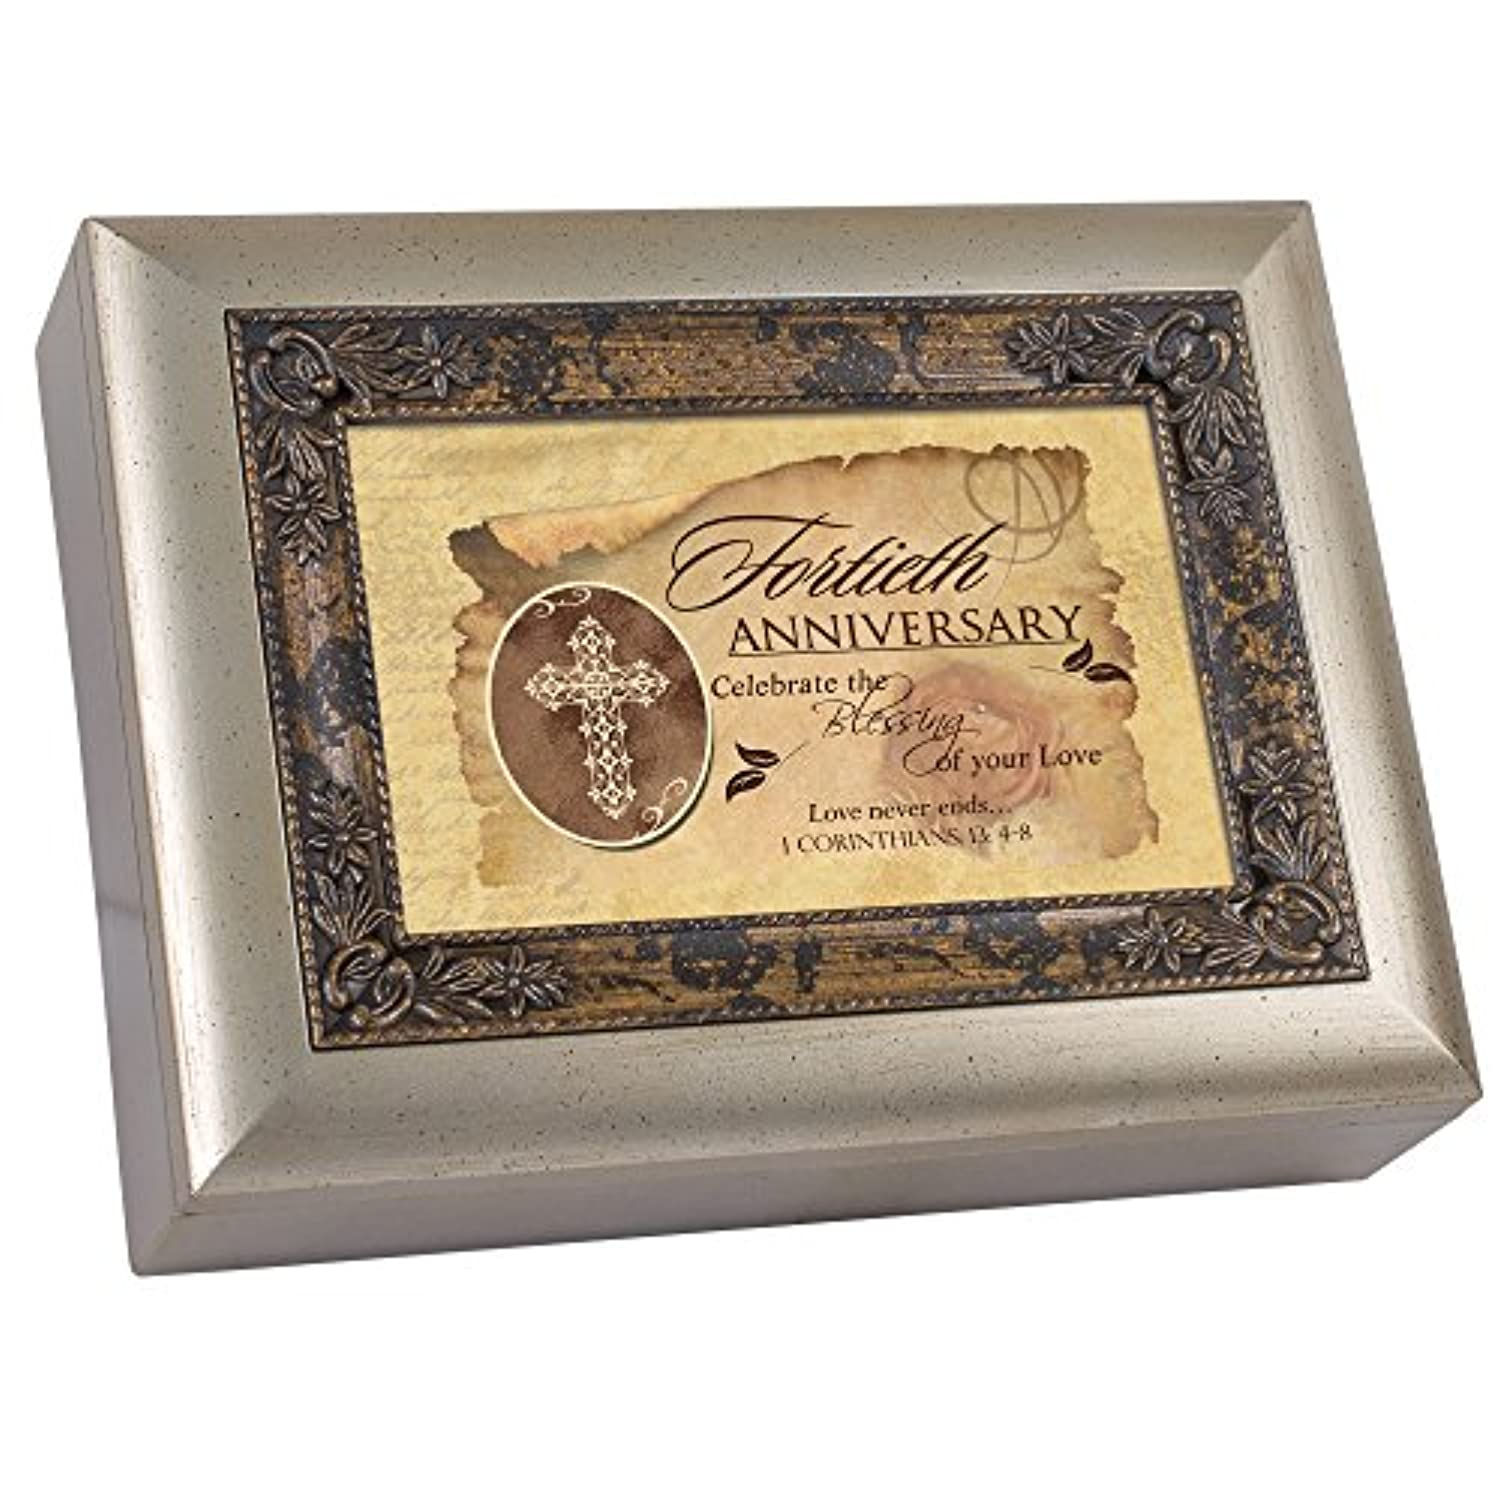 Cottage Garden 40Th Anniversary Amber With Inlay Digital Music Box / Jewellery Box Plays Blessings